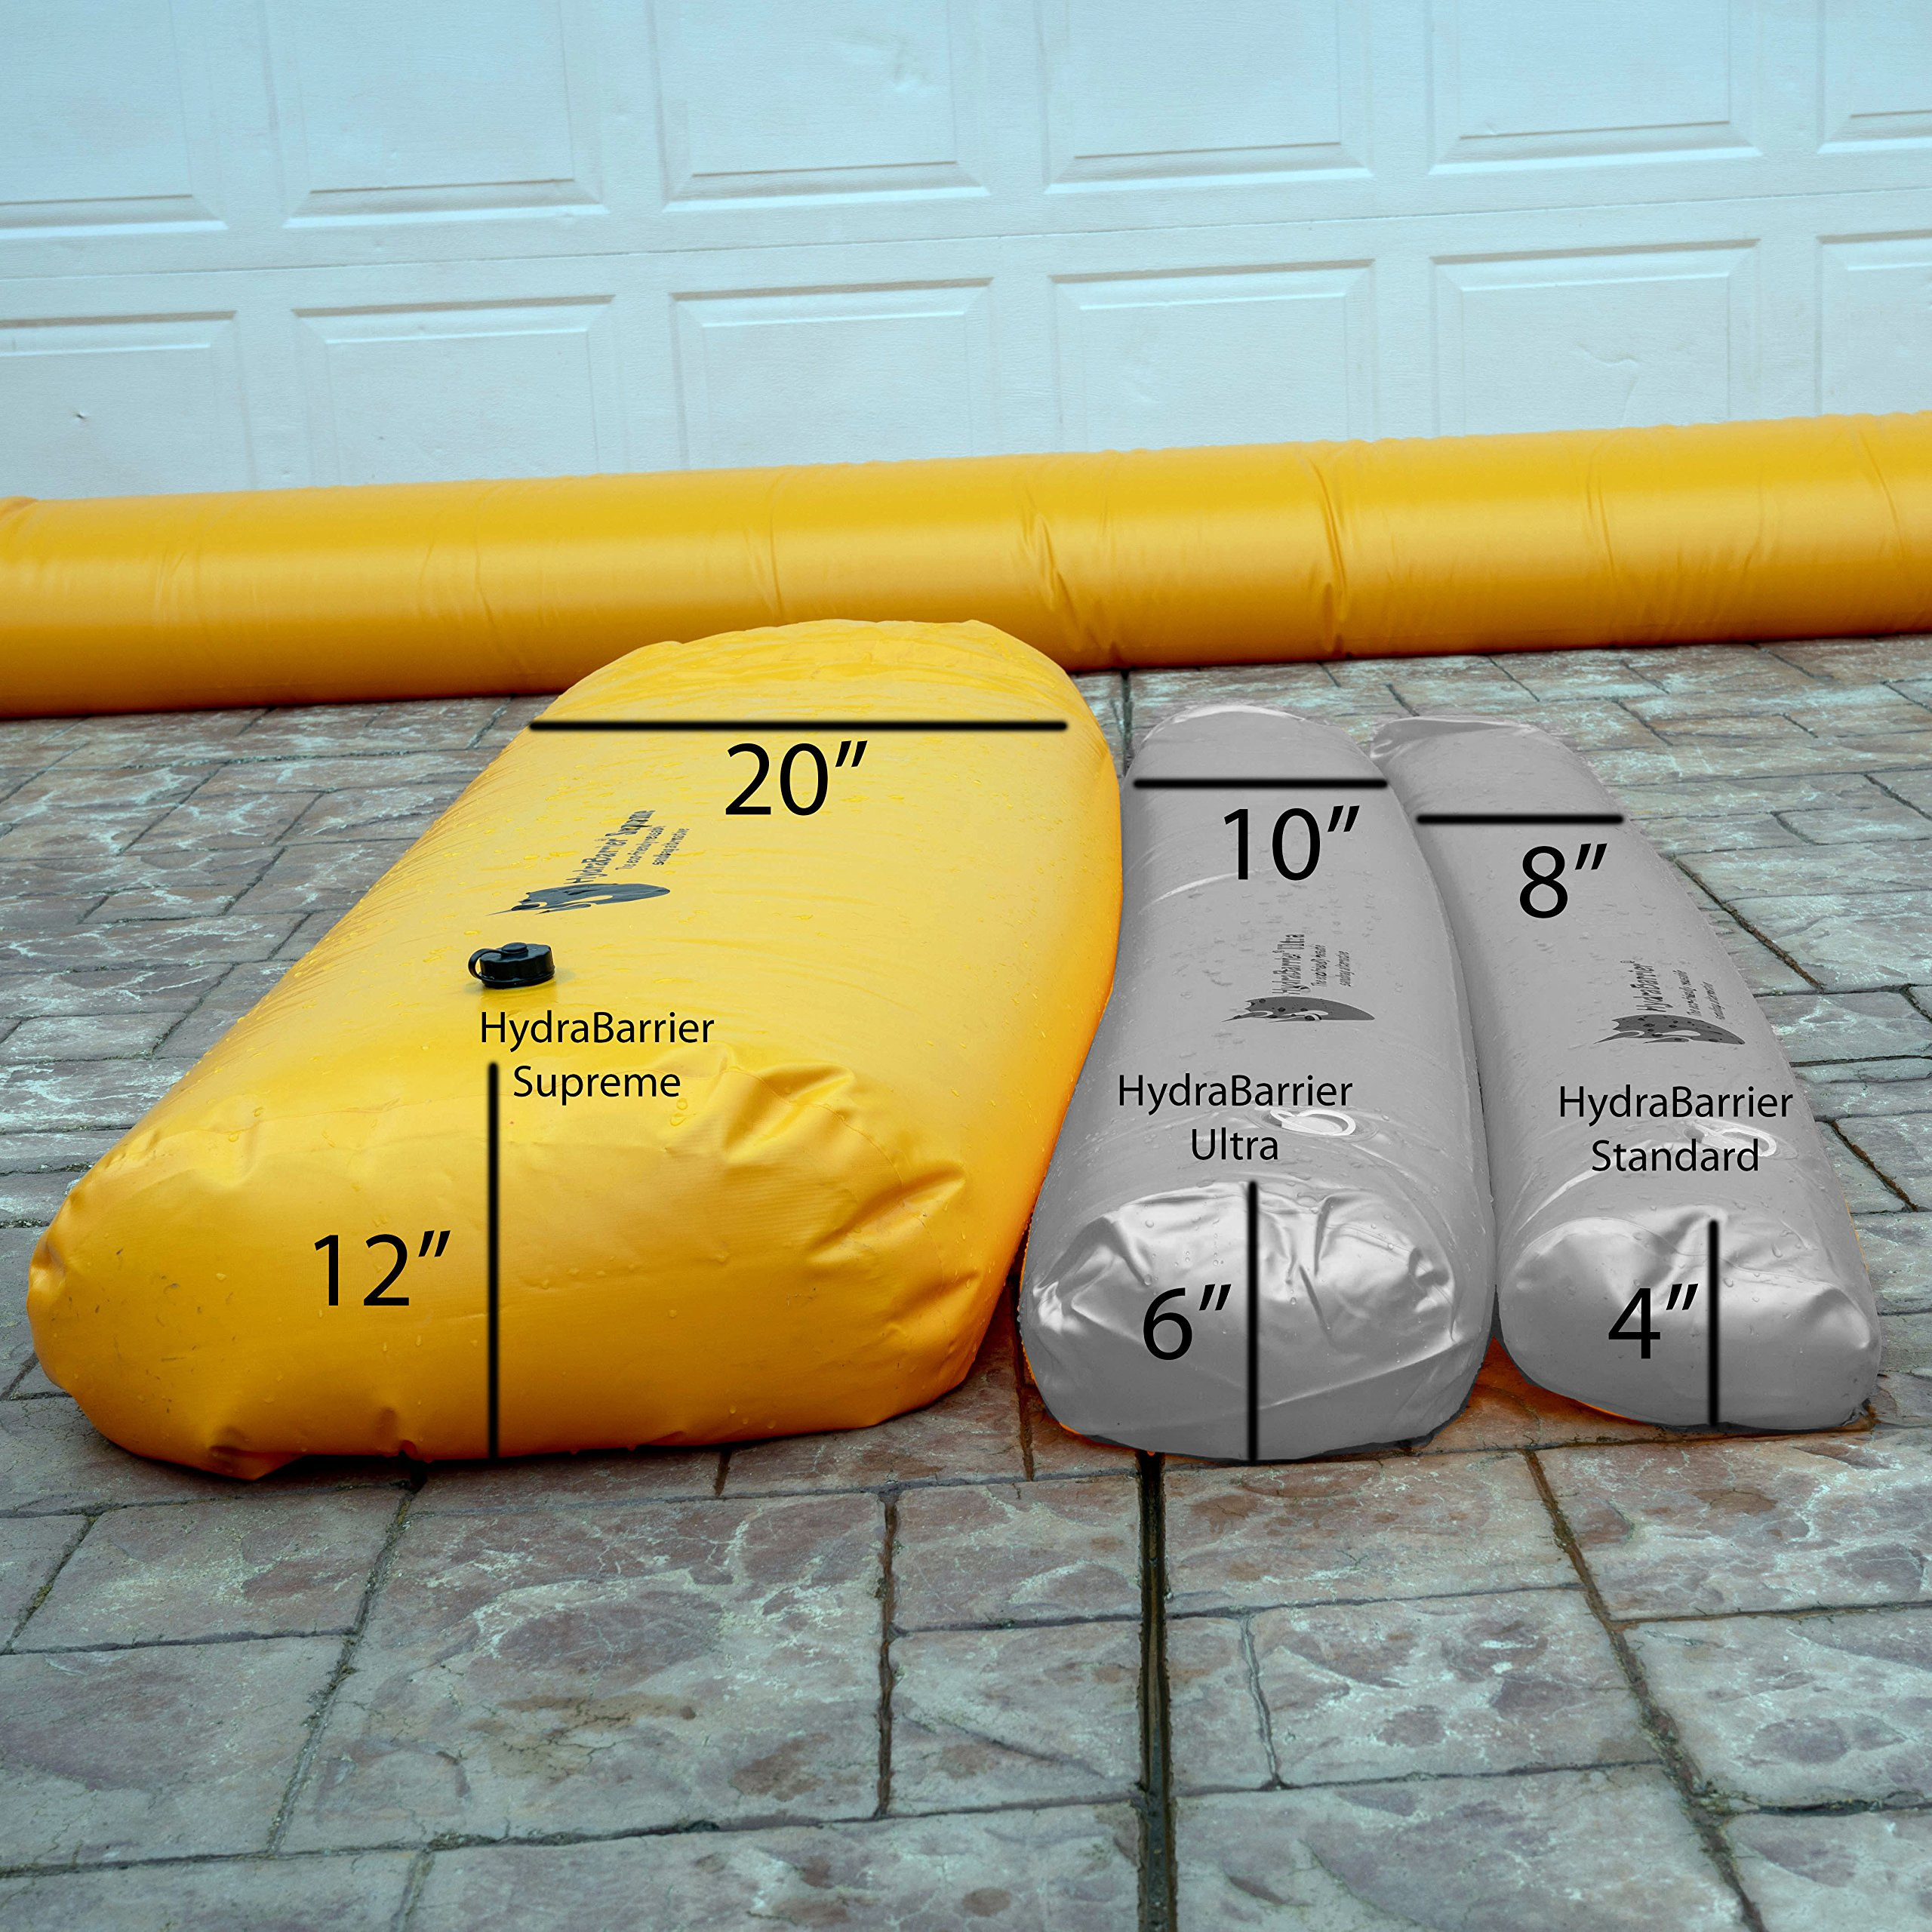 Best Sandbag Alternative - Hydrabarrier Supreme 12 Foot Length 12 Inch Height. - Water Diversion Tubes That are The Lightweight, Re-usable, and Eco-Friendly by Watershed Innovations (Image #2)